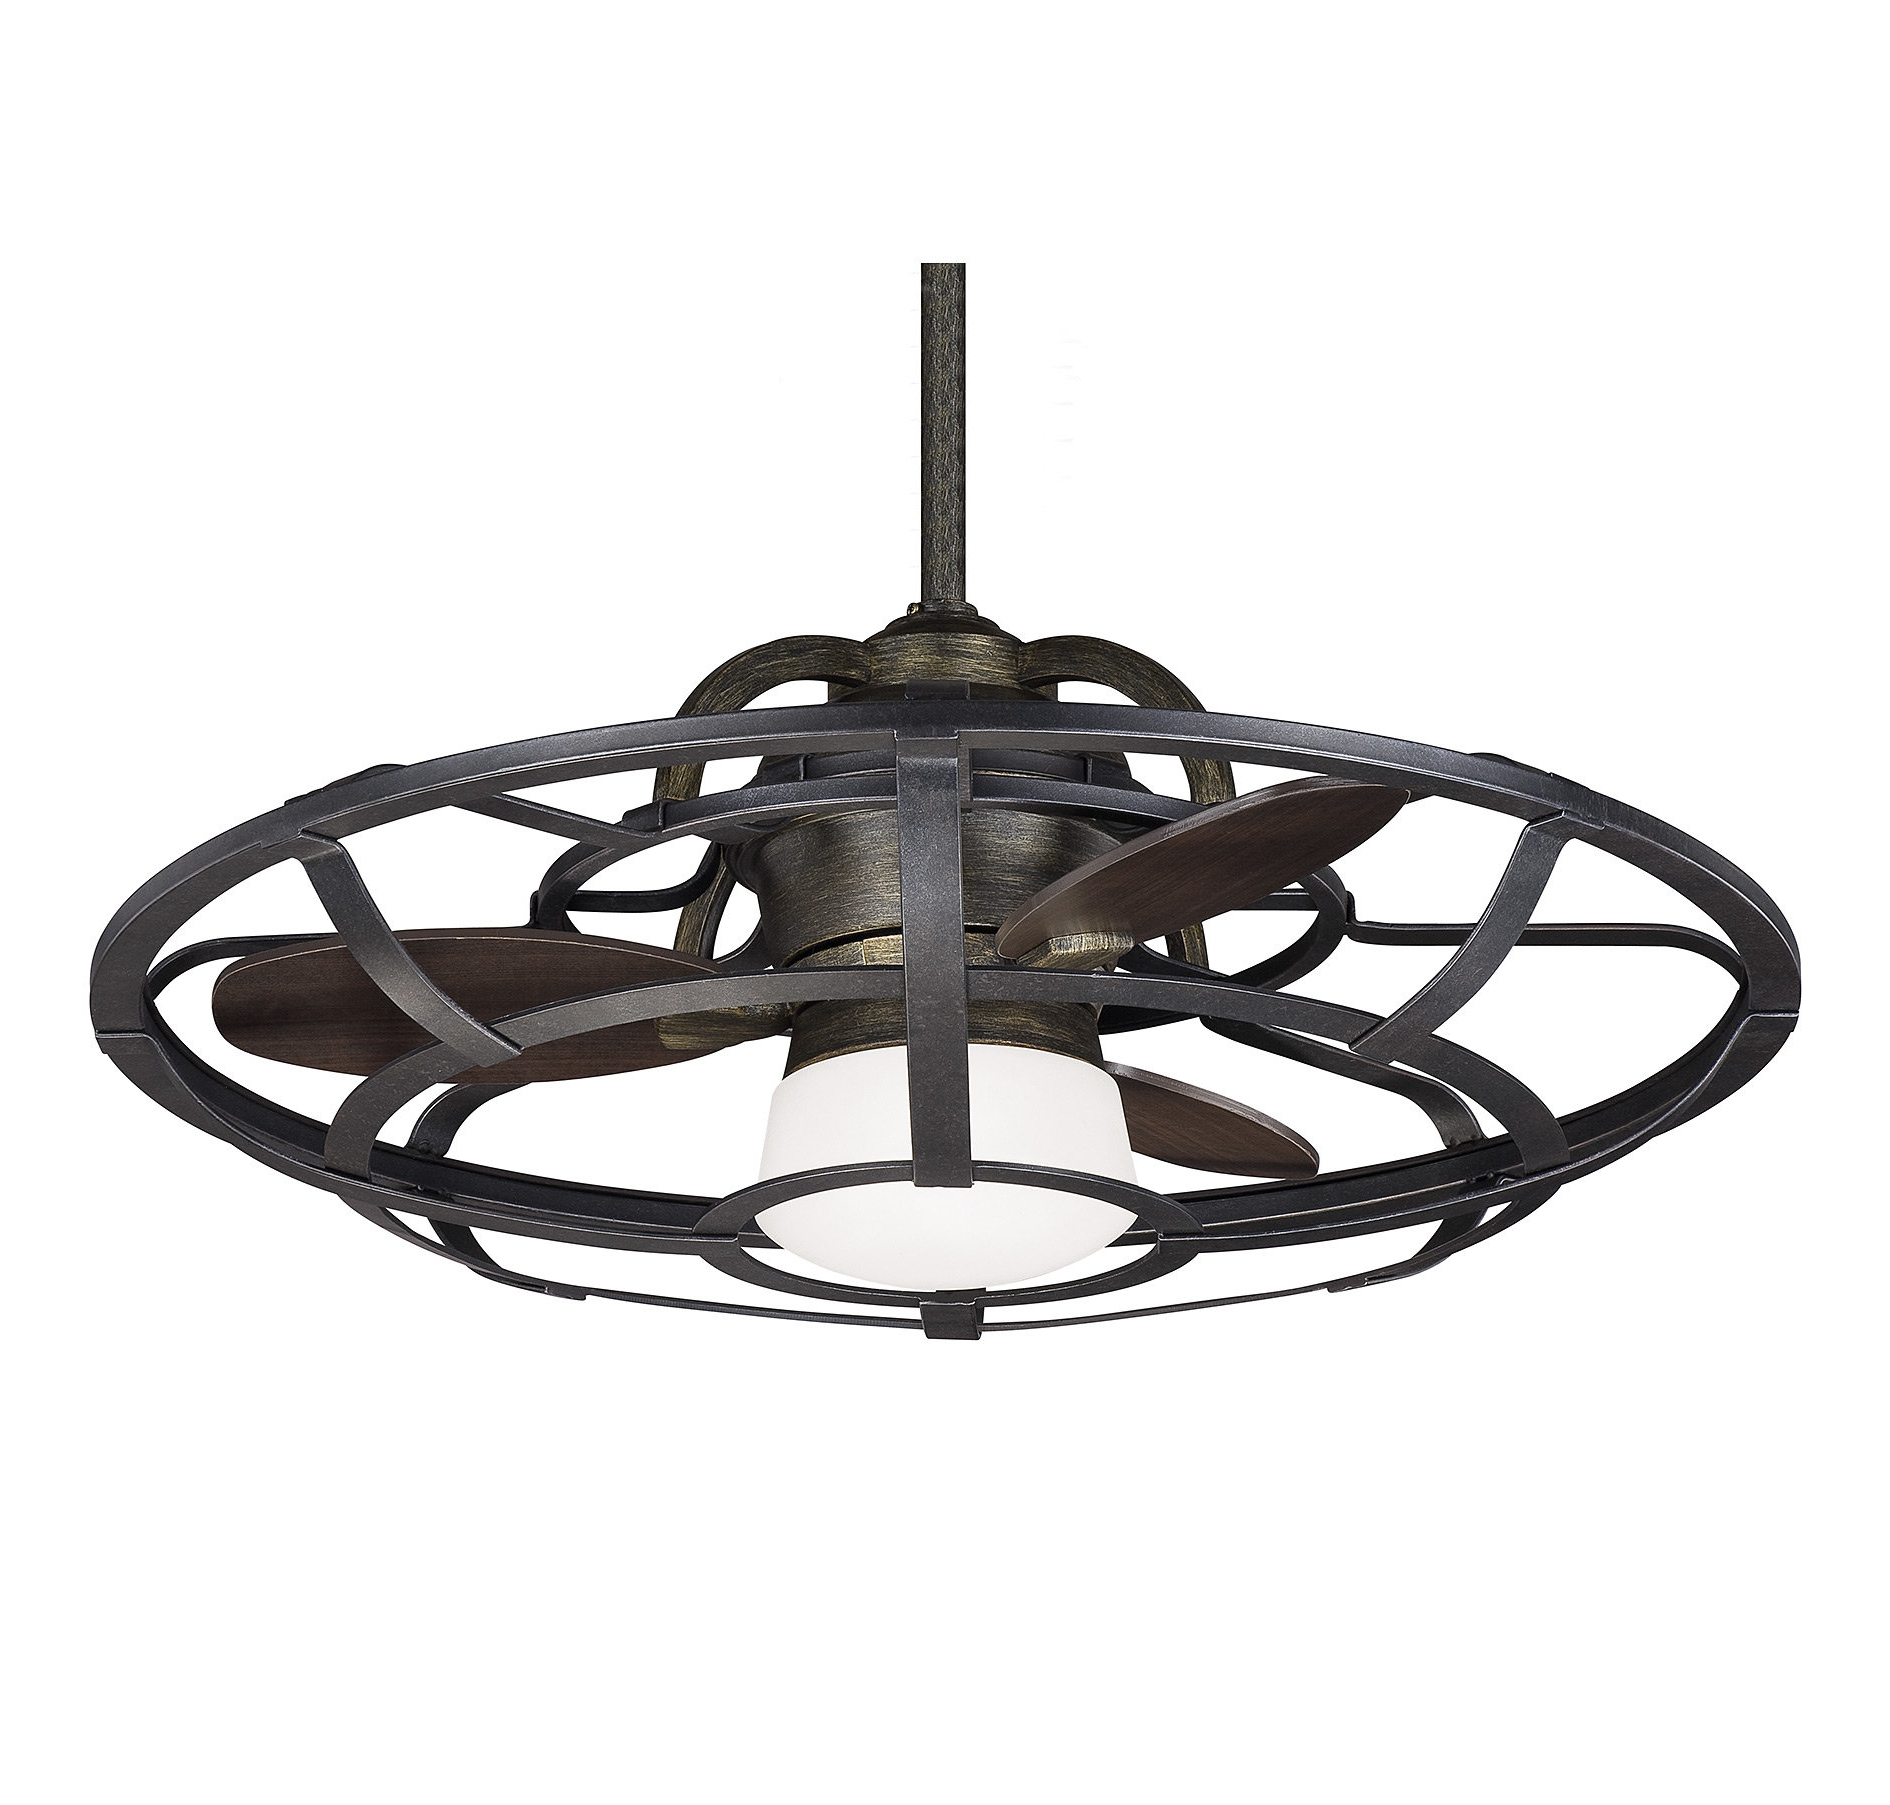 """Wilburton 3 Blade Outdoor Ceiling Fans With Regard To Recent Laurel Foundry Modern Farmhouse 26"""" Wilburton 3 Blade Outdoor Ceiling Fan  With Remote (View 20 of 20)"""